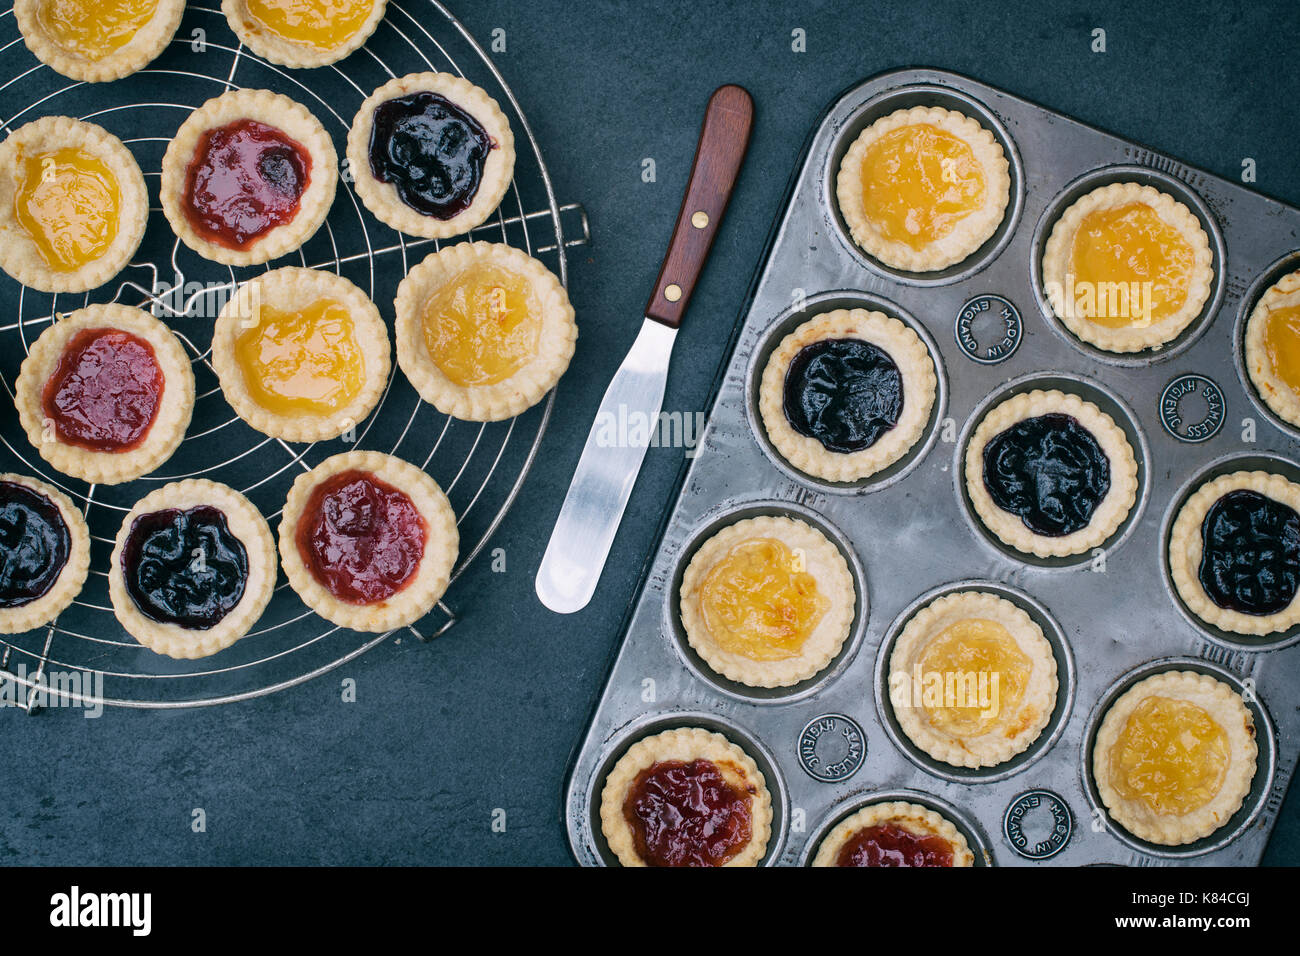 Cooked homemade jam tarts in a baking tray and on a vintage circular wire rack - Stock Image